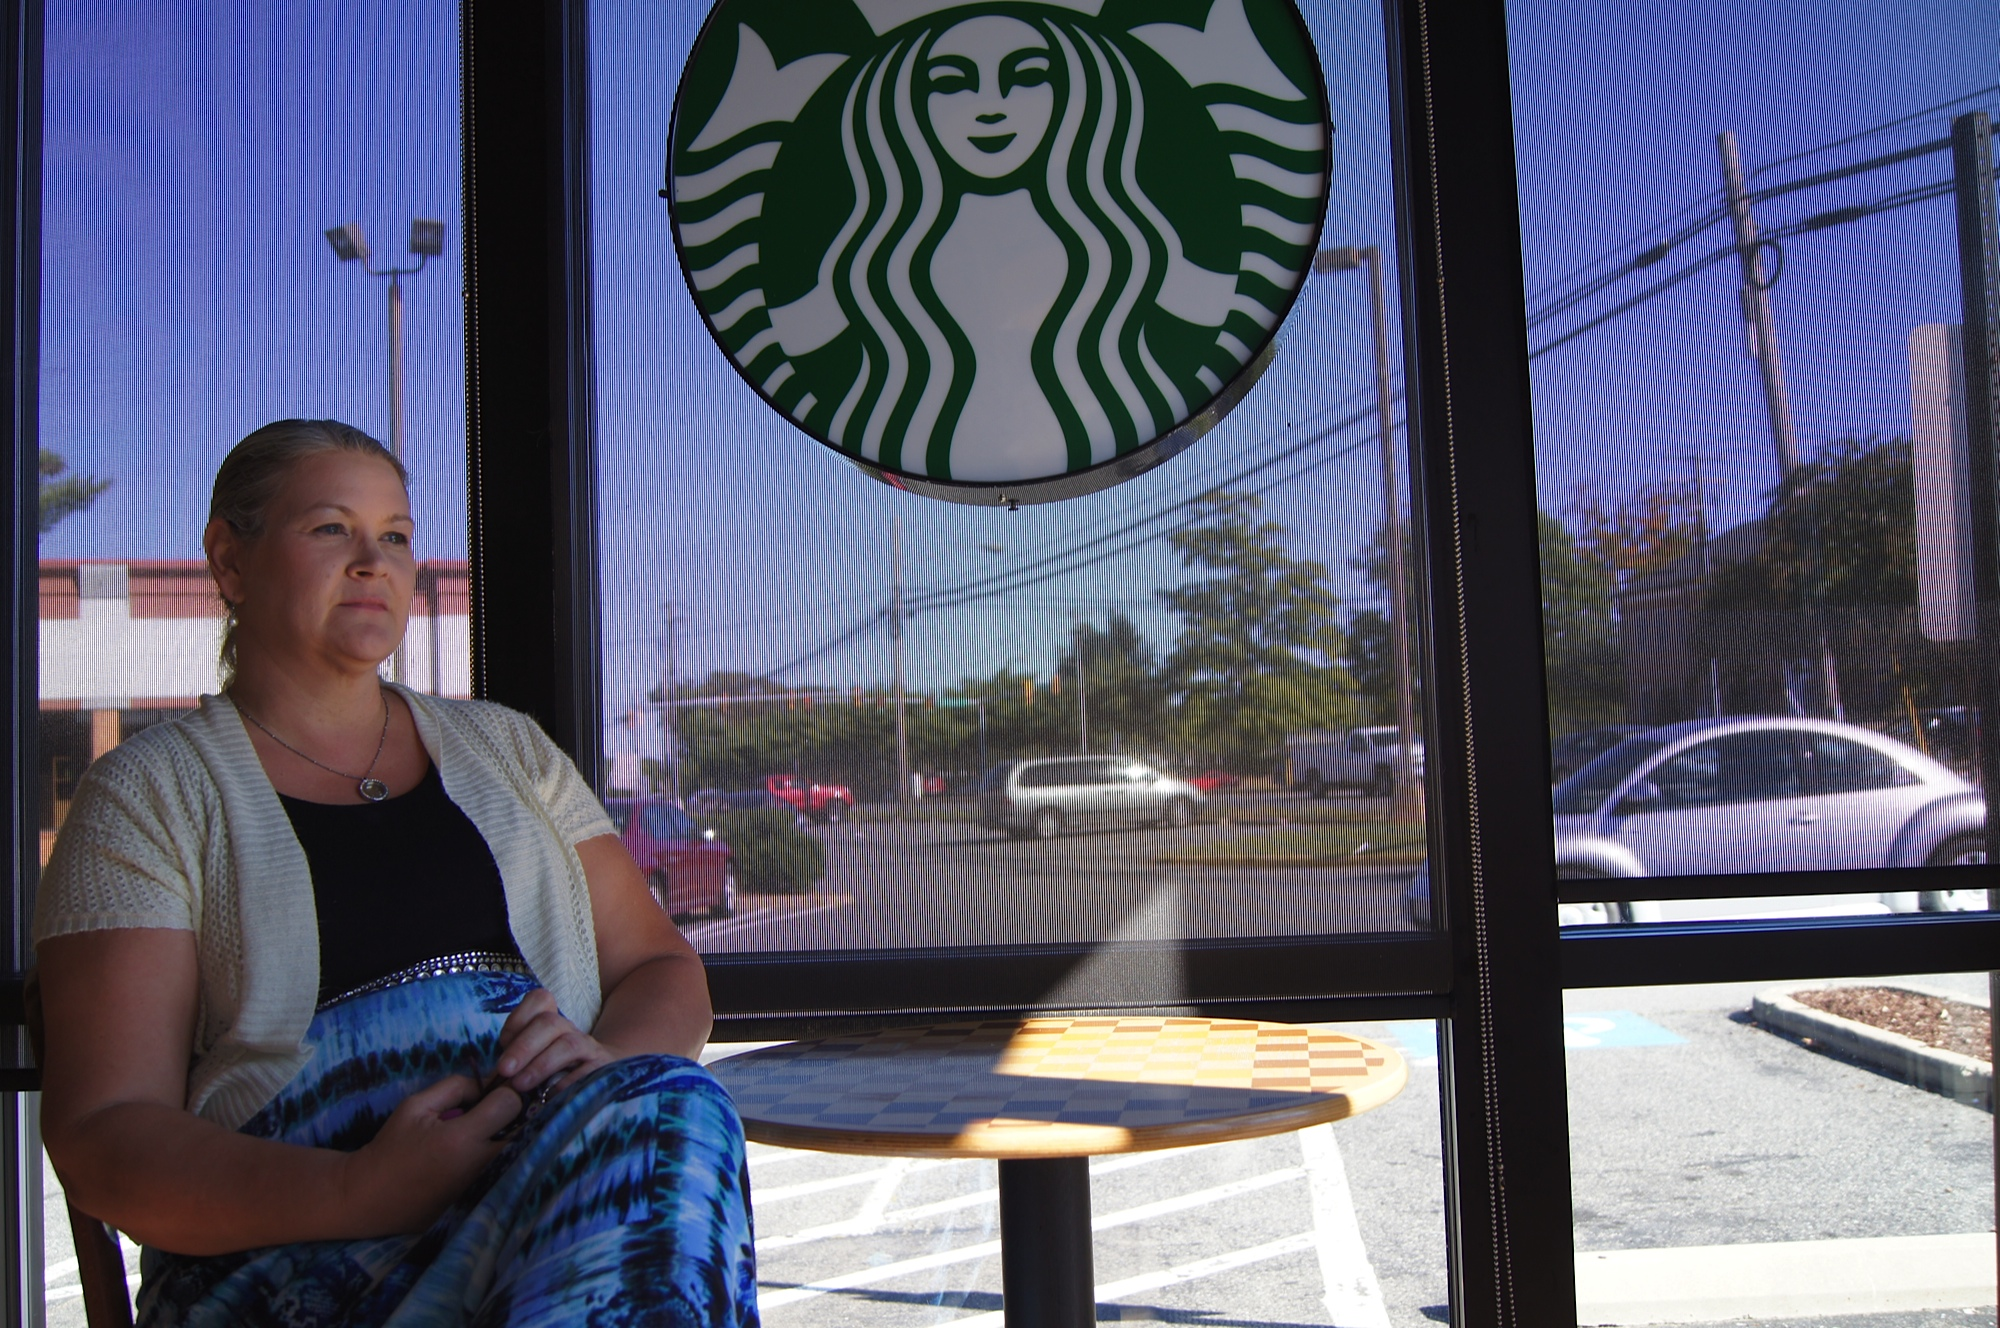 Mary_Hamm_at_Starbucks_Smaller_file.jpg